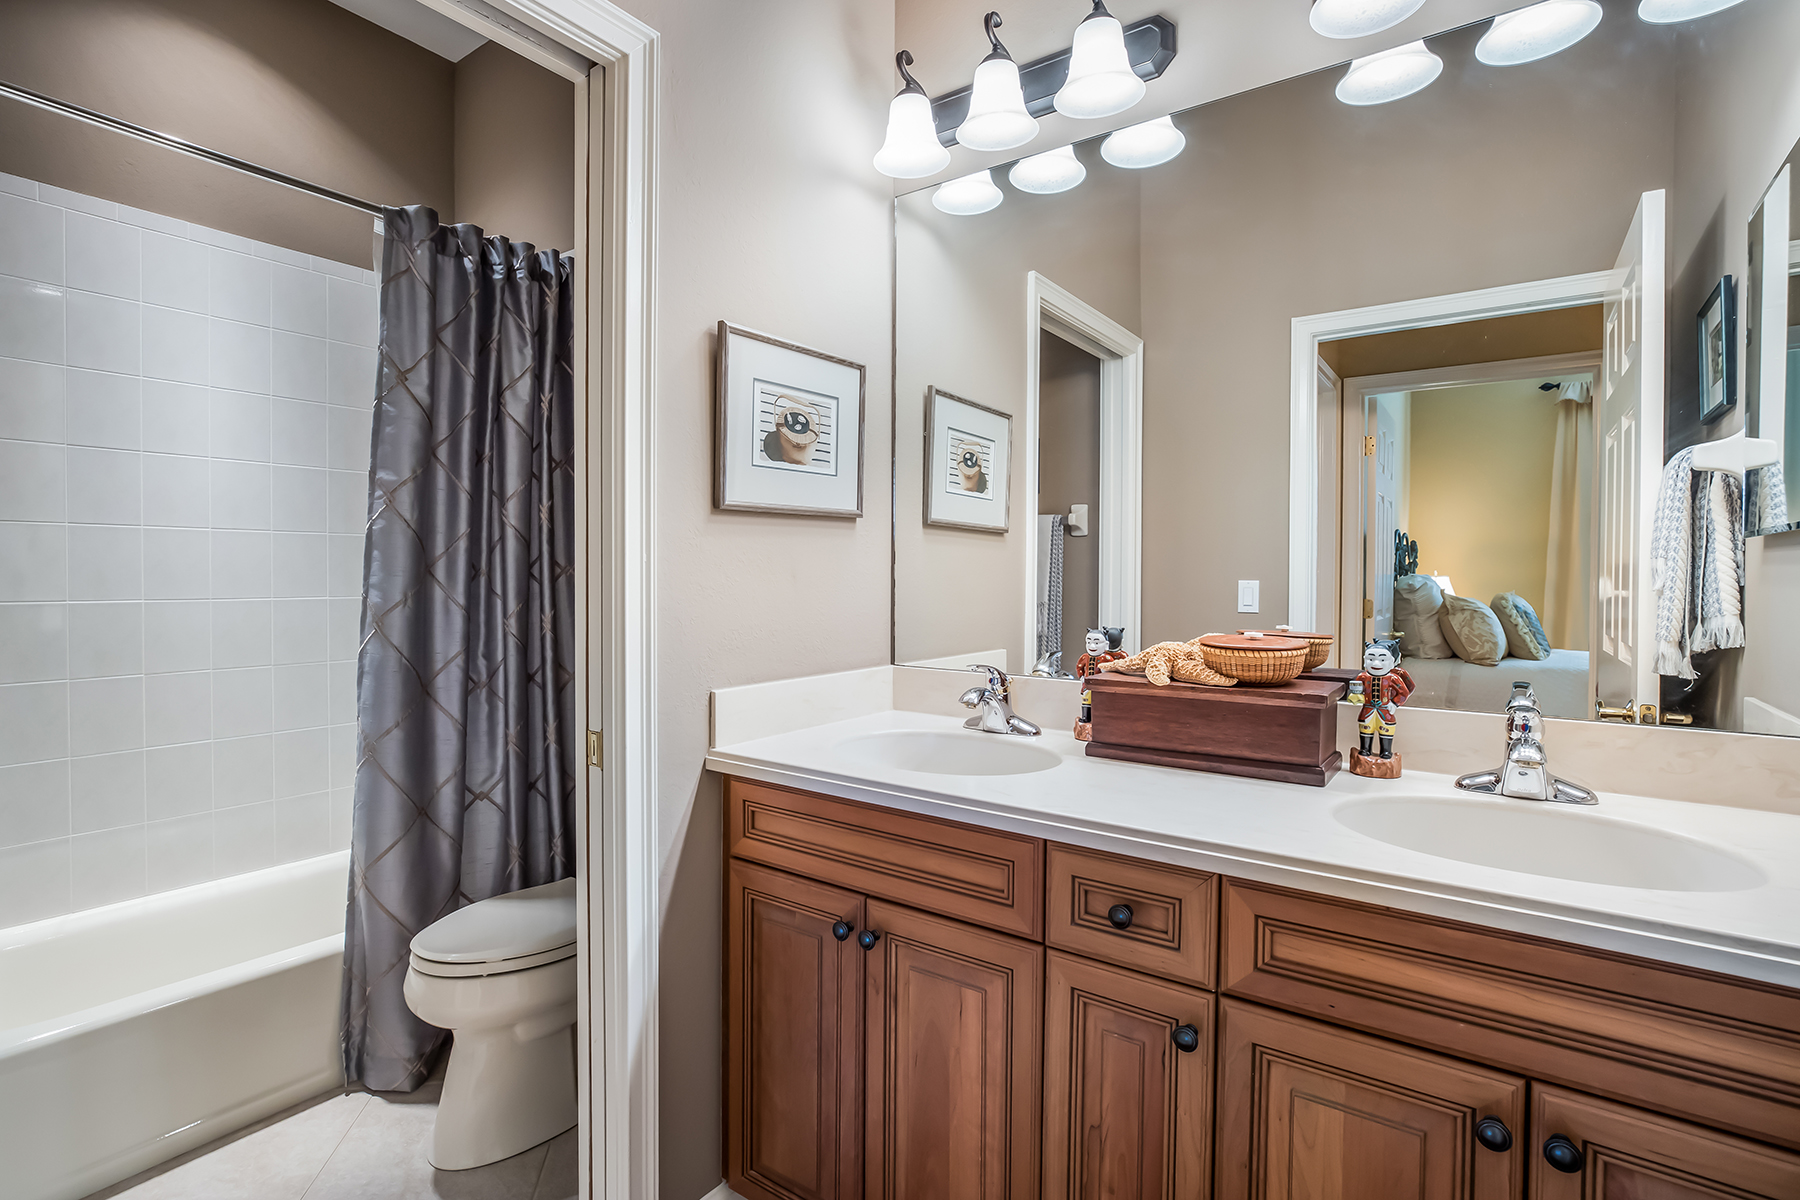 Additional photo for property listing at VENETIAN GOLF & RIVER CLUB 238 Montelluna Dr, North Venice, Florida 34275 Vereinigte Staaten